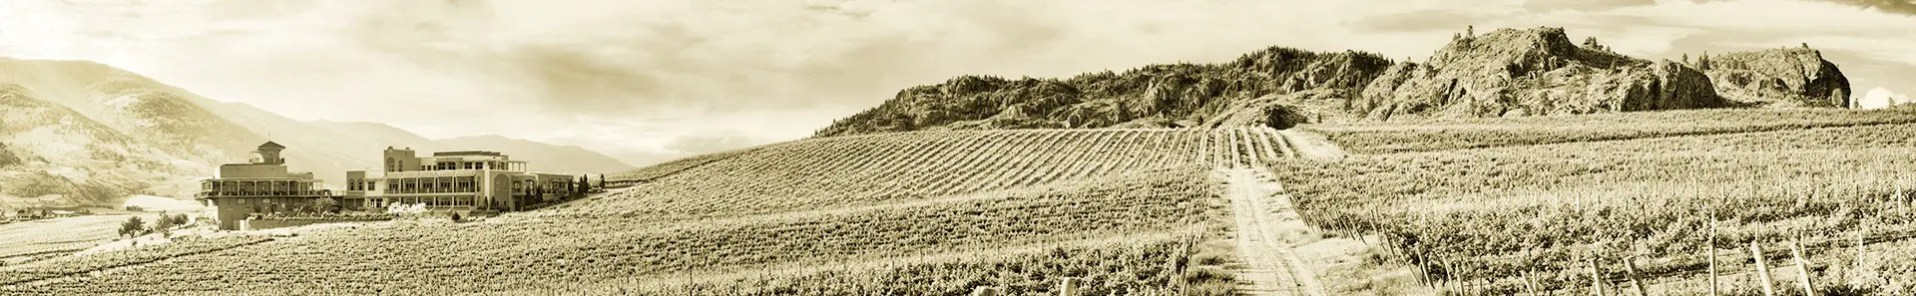 Panoramic photograph of Burrowing Owl Estate Winery in The Okanagan Valley, Oliver, BC, Canada